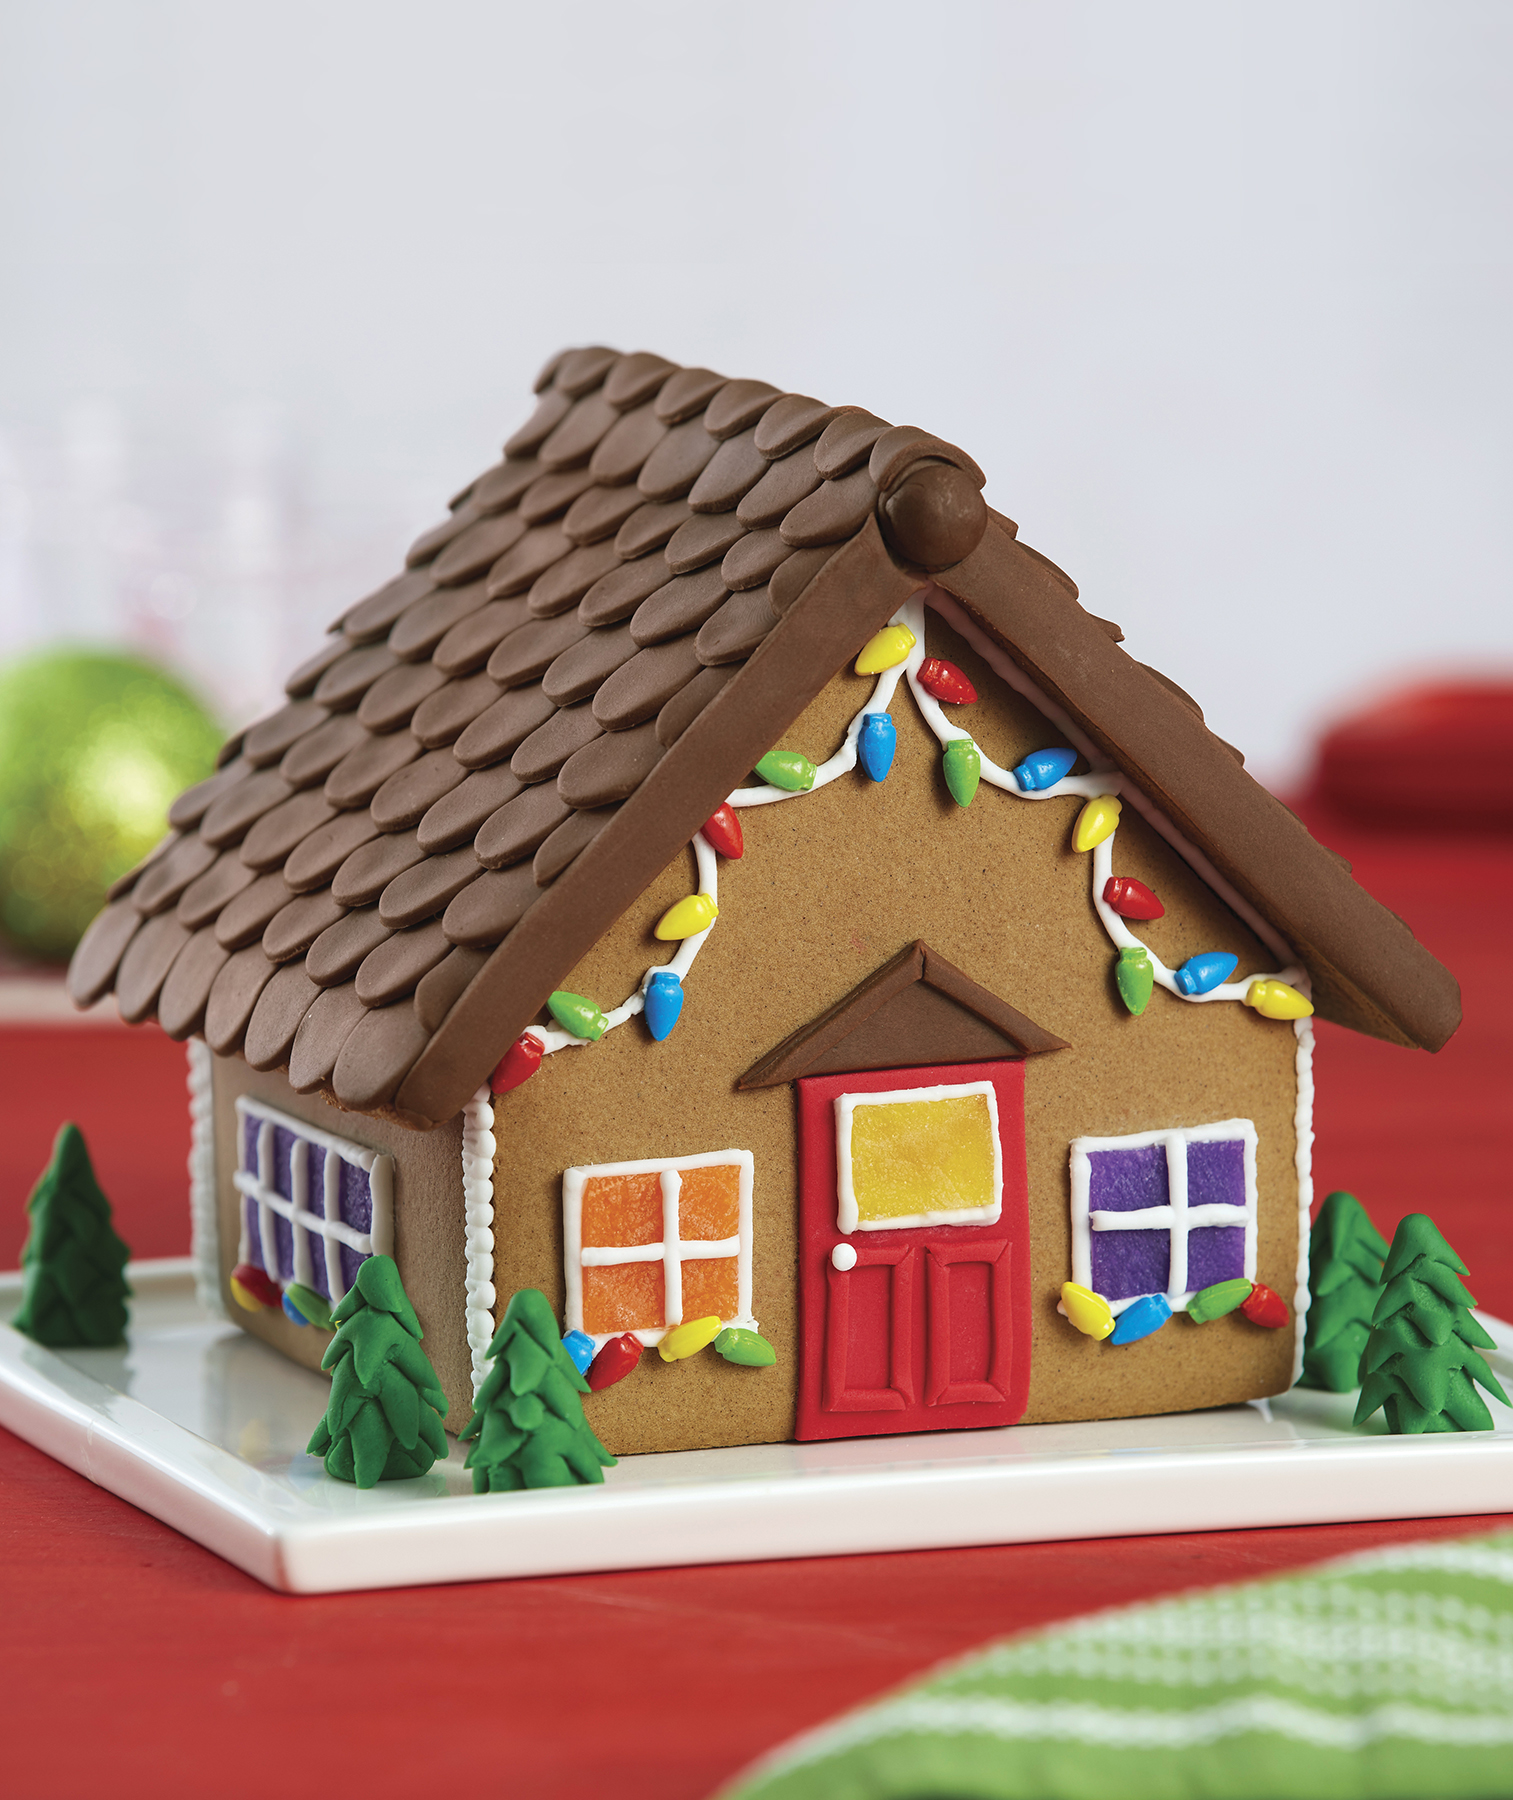 Gingerbread House Decorations To Take Your Creation To The Next